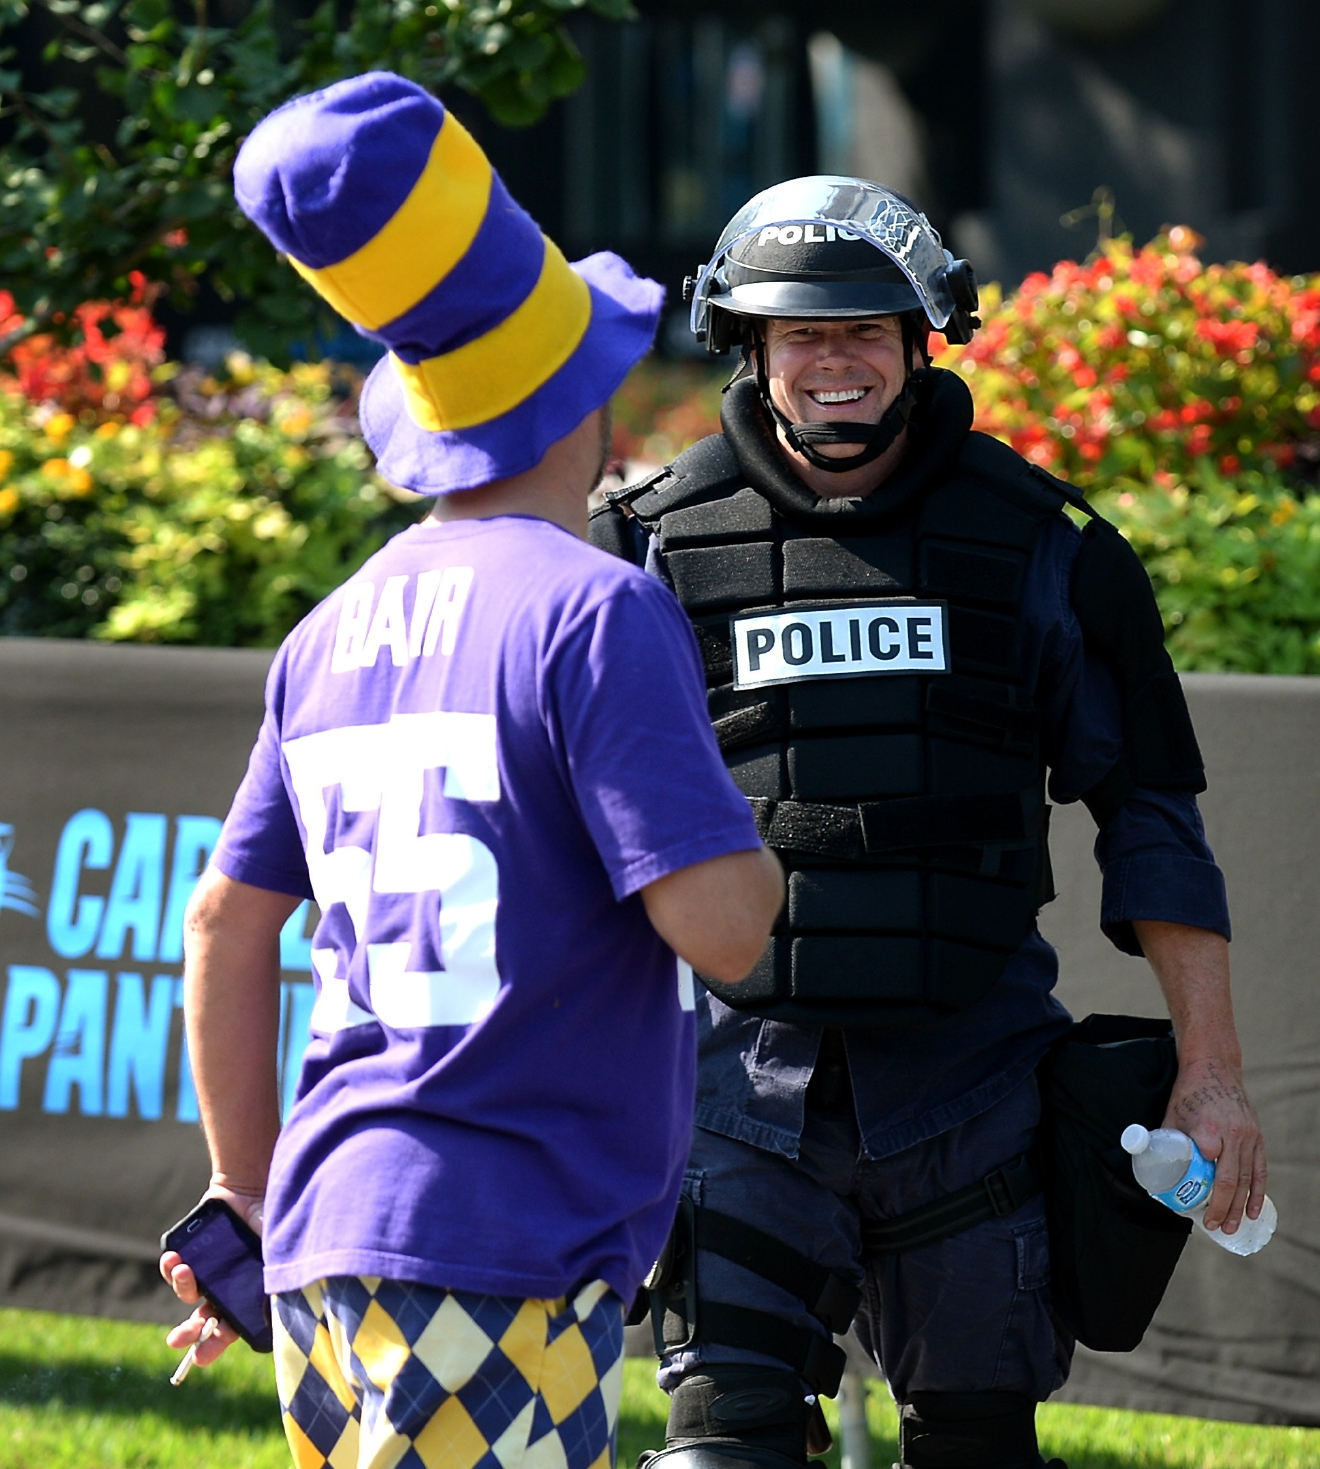 A Charlotte-Mecklenburg police officer laughs with a Minnesota Vikings fan near an entrance area at Bank of America Stadium, where people were protesting, in Charlotte, N.C., Sunday, Sept. 25, 2016. The Carolina Panthers hosted an NFL football game with the Vikings at the stadium. When the national anthem was played, the protesters all dropped to one knee as many NFL players have been doing for weeks to call attention to issues, including police shootings. (Diedra Laird/The Charlotte Observer via AP)